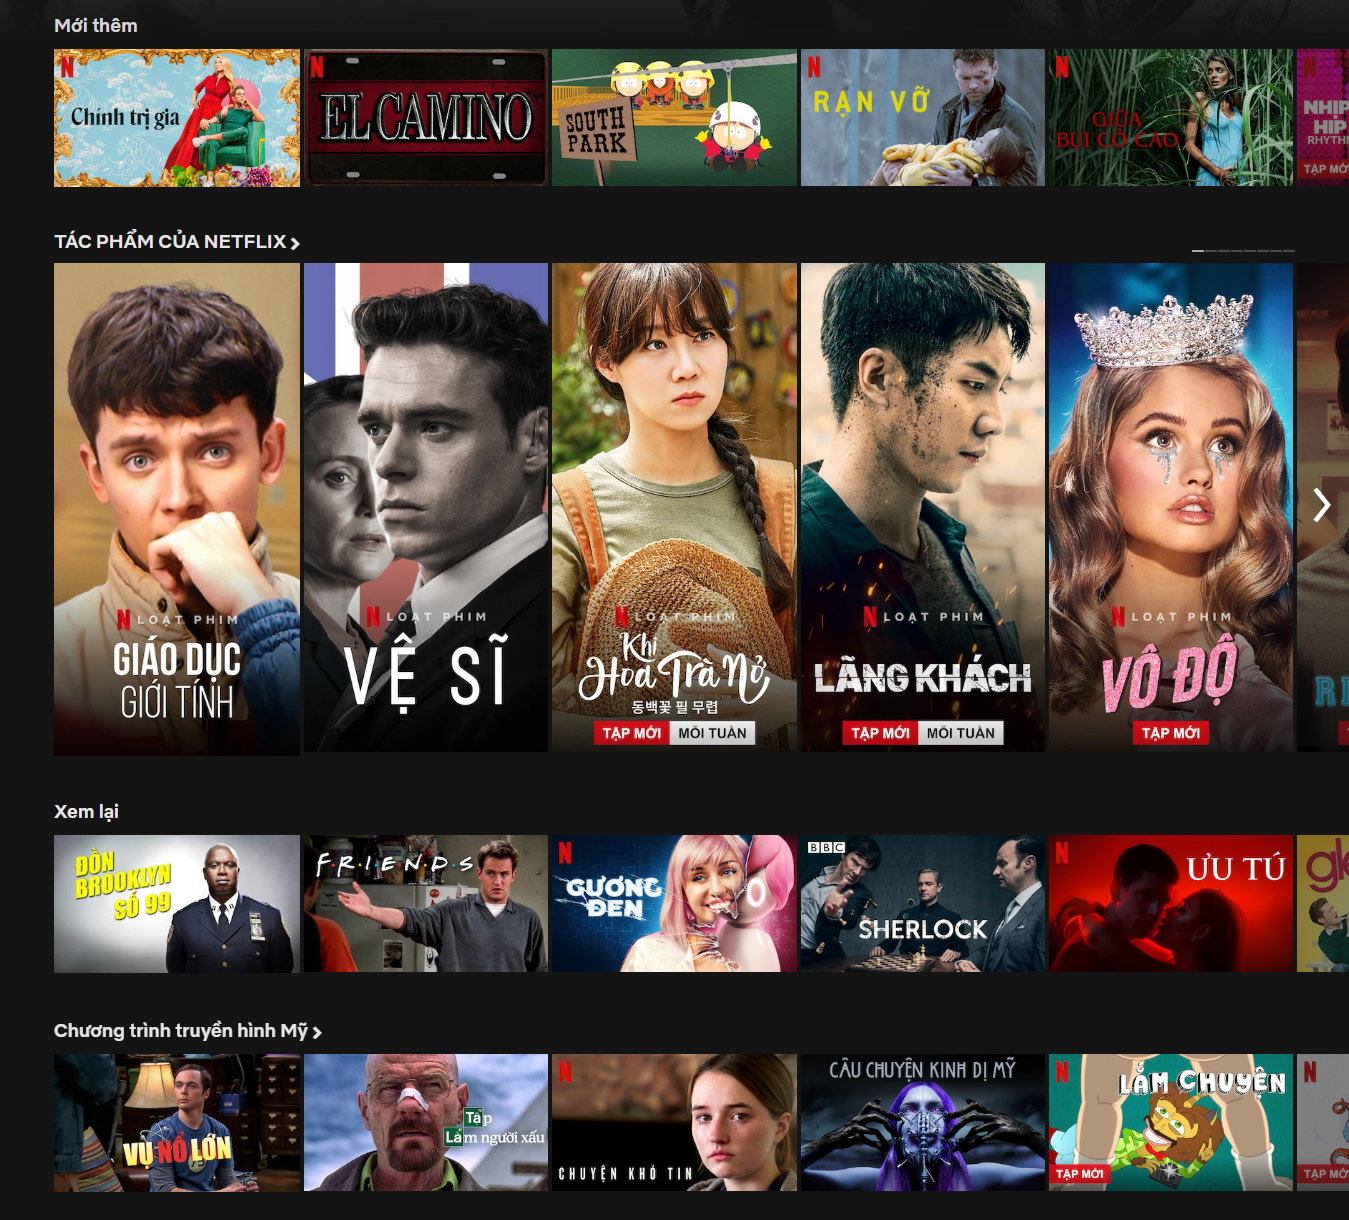 The Vietnamese user interface of Netflix is seen in this screen grab.